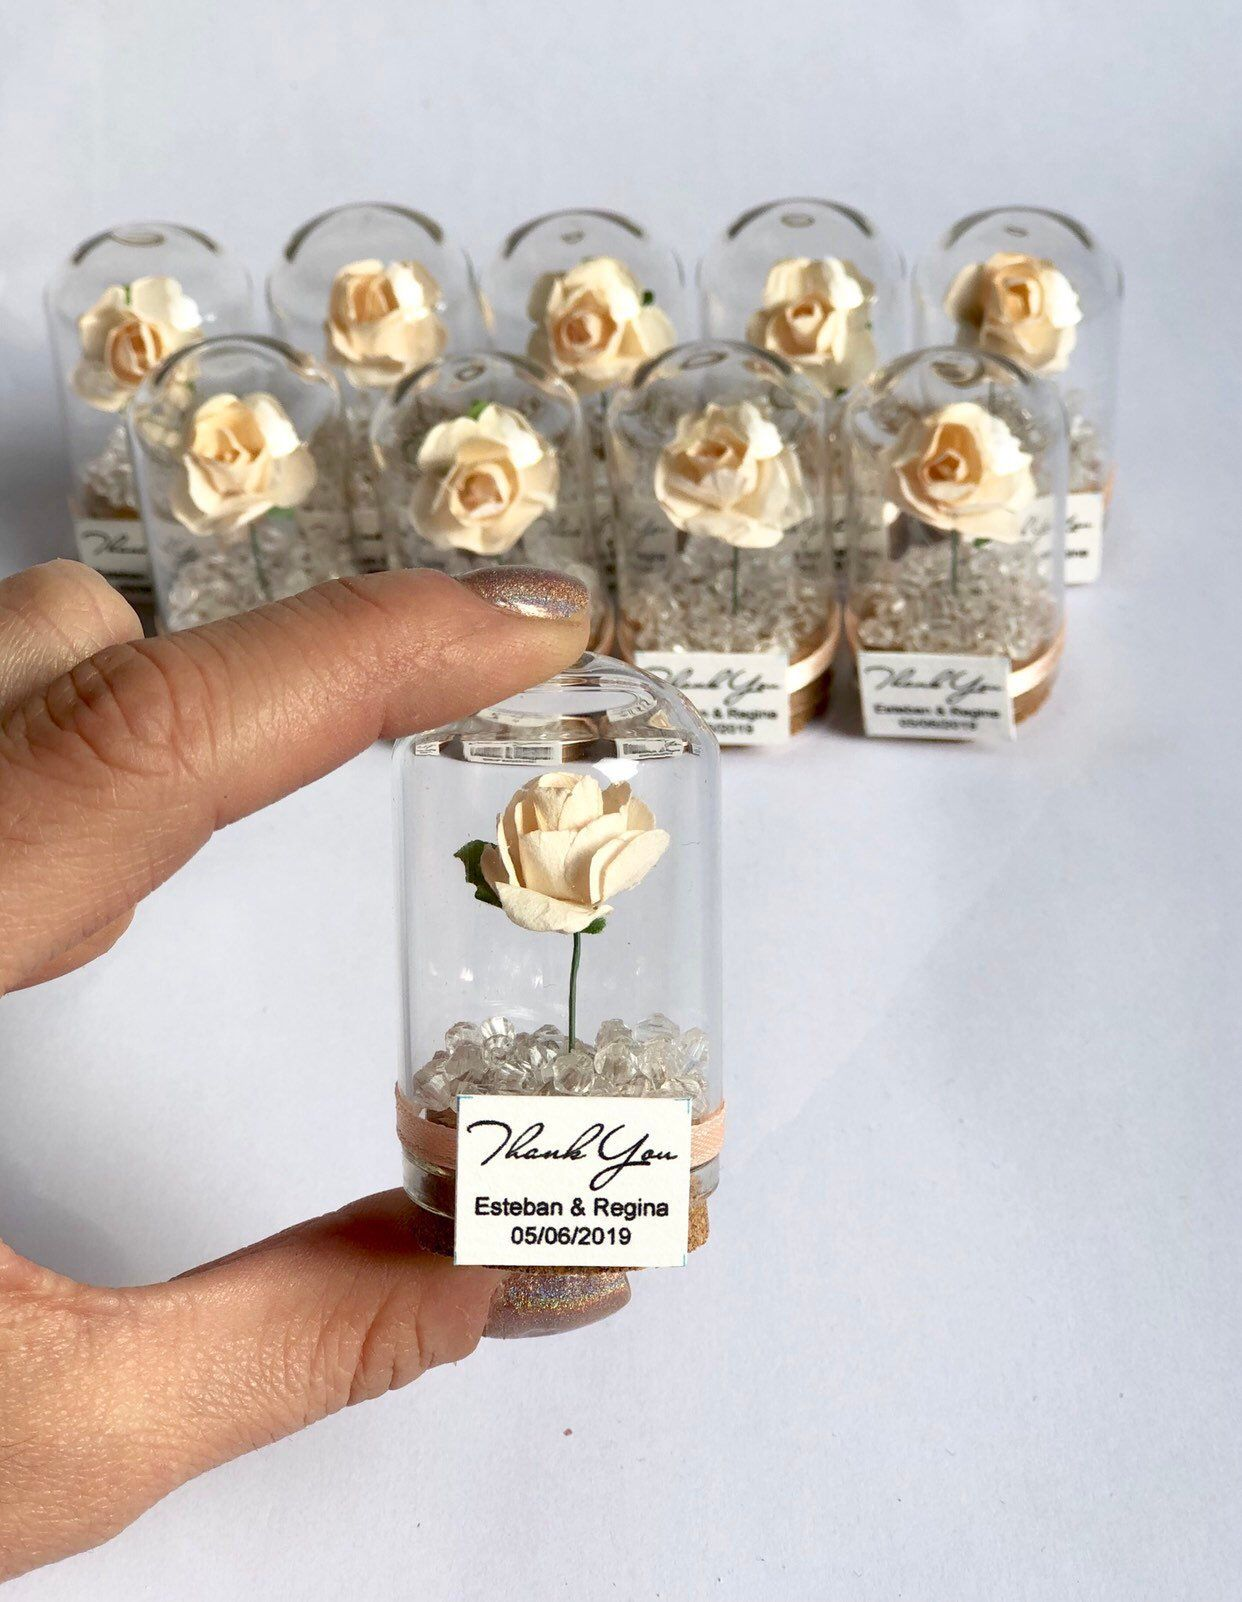 10pcs Wedding Favors For Guests Wedding Favors Favors Dome Etsy Creative Wedding Favors Customized Wedding Favor Inexpensive Wedding Favors